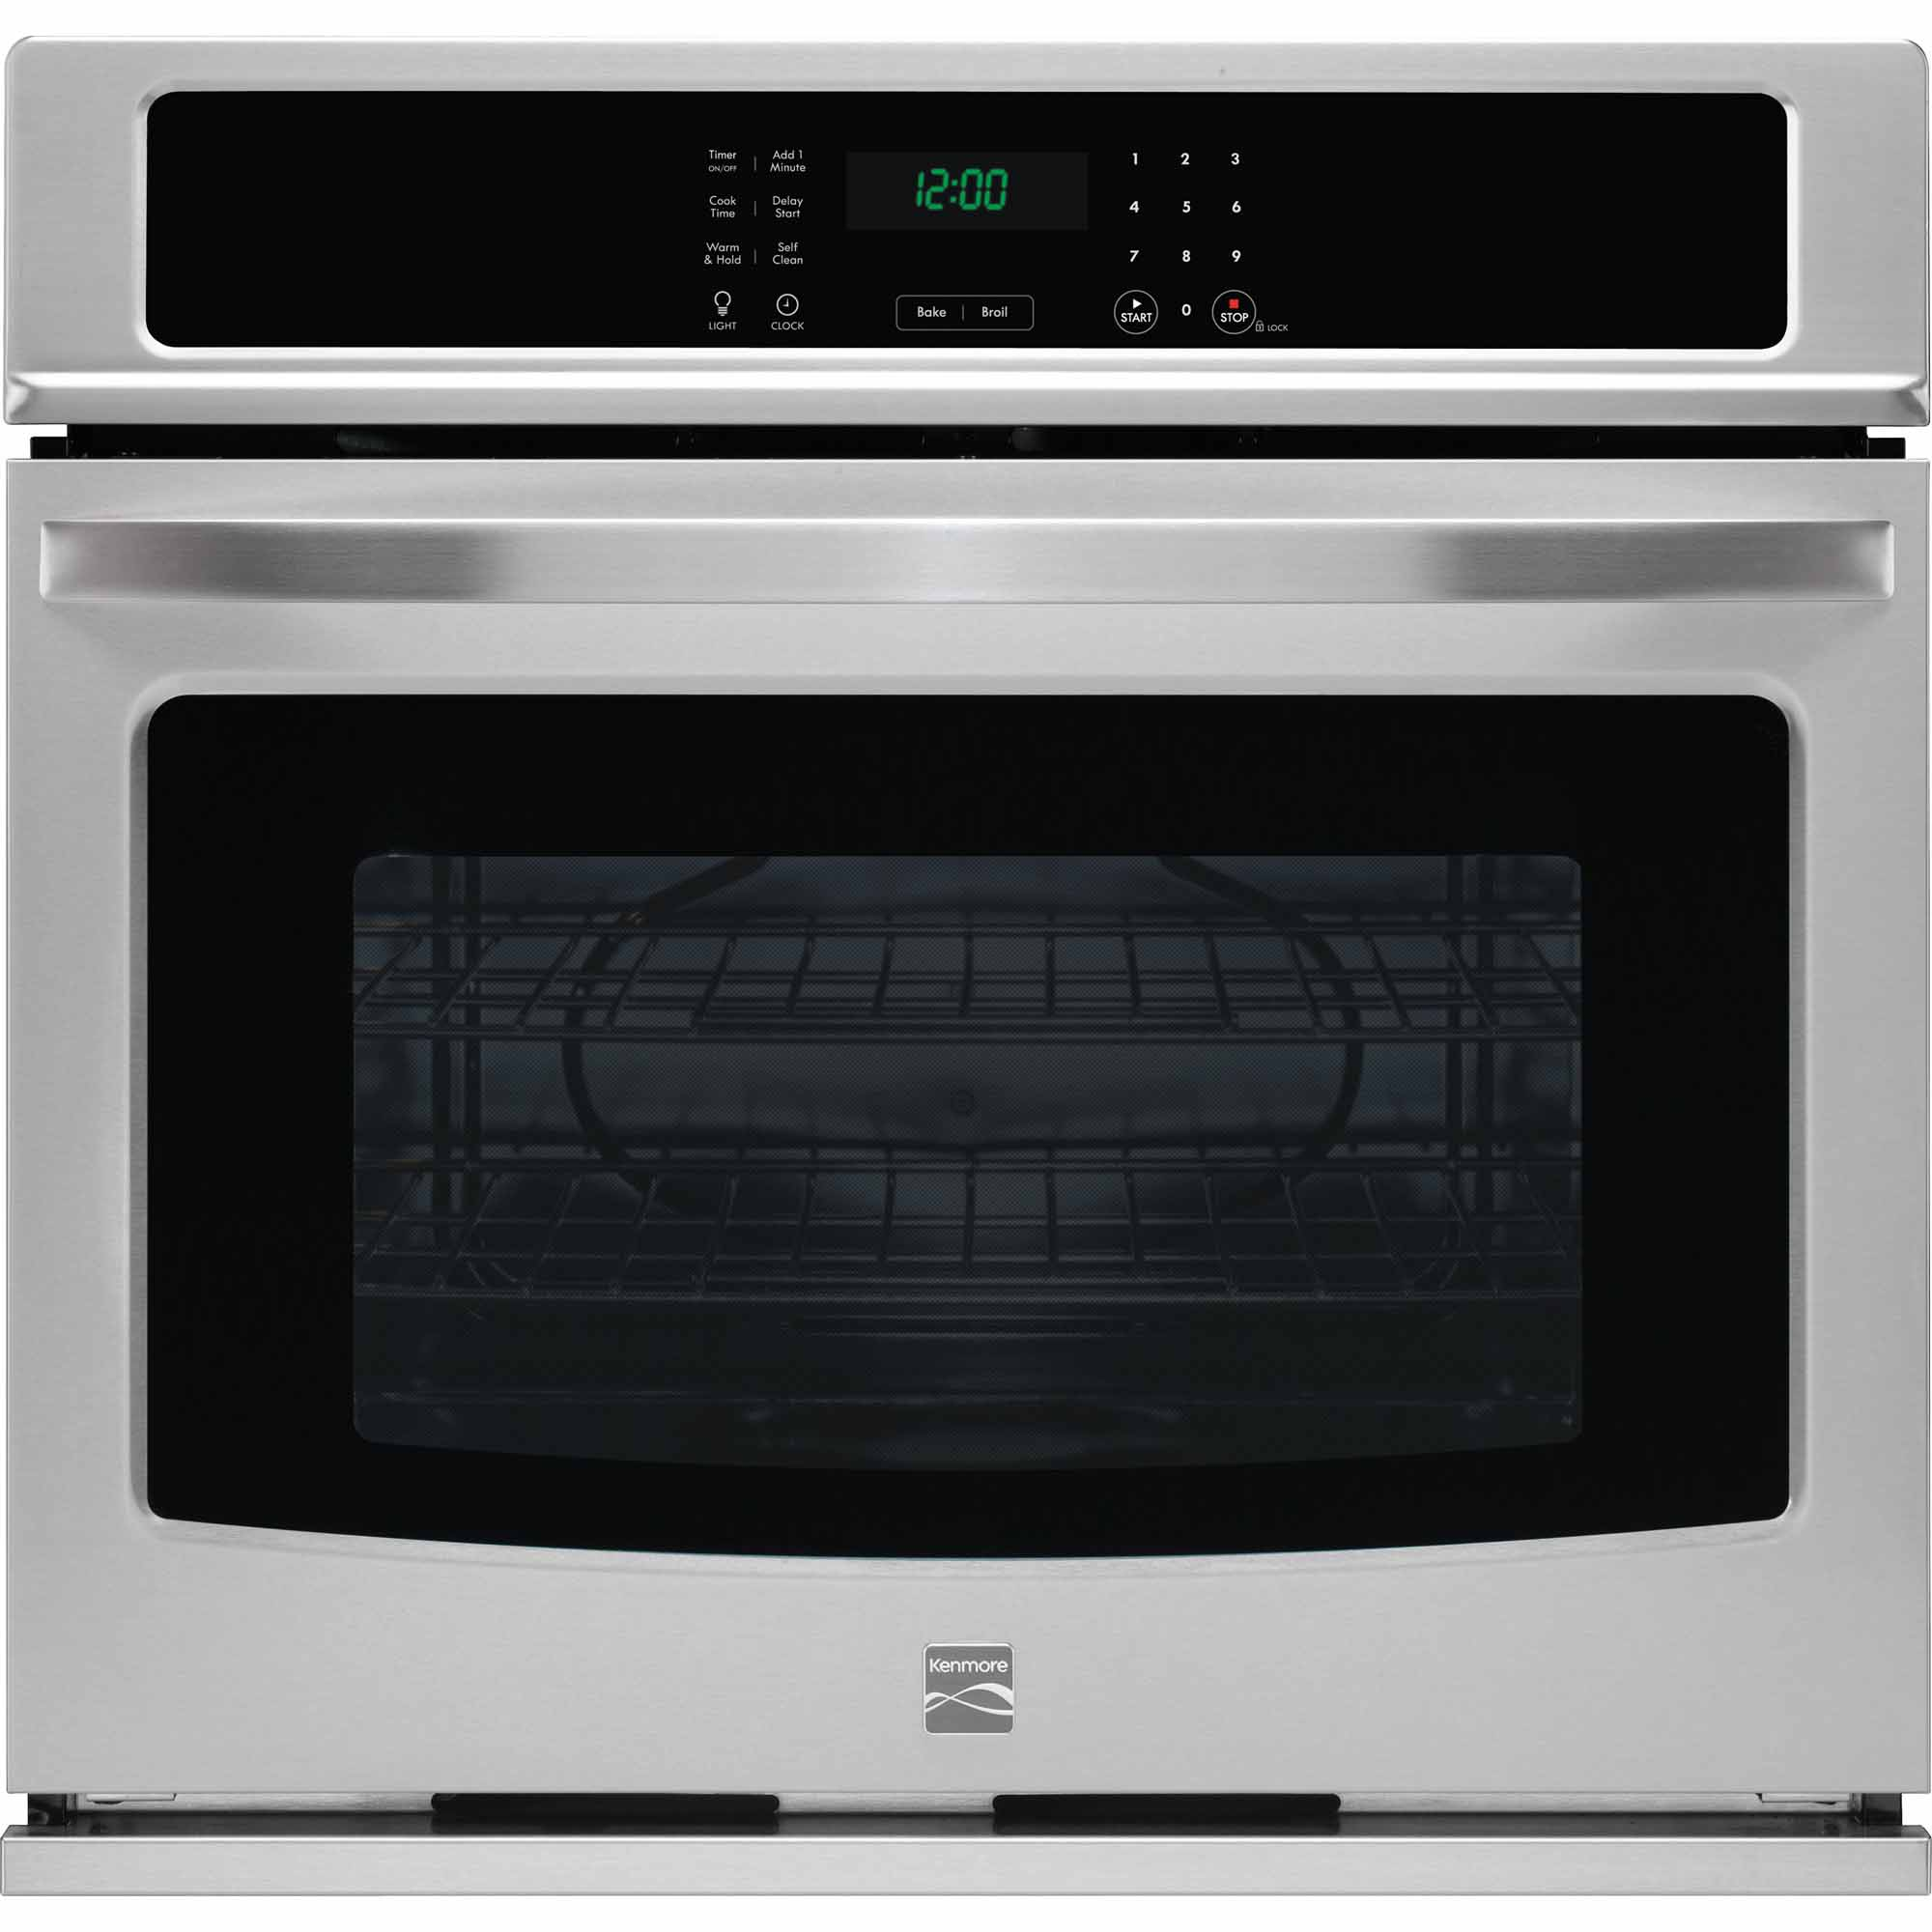 Kenmore 49403 27 Electric Self-Clean Single Wall Oven - Stainless Steel